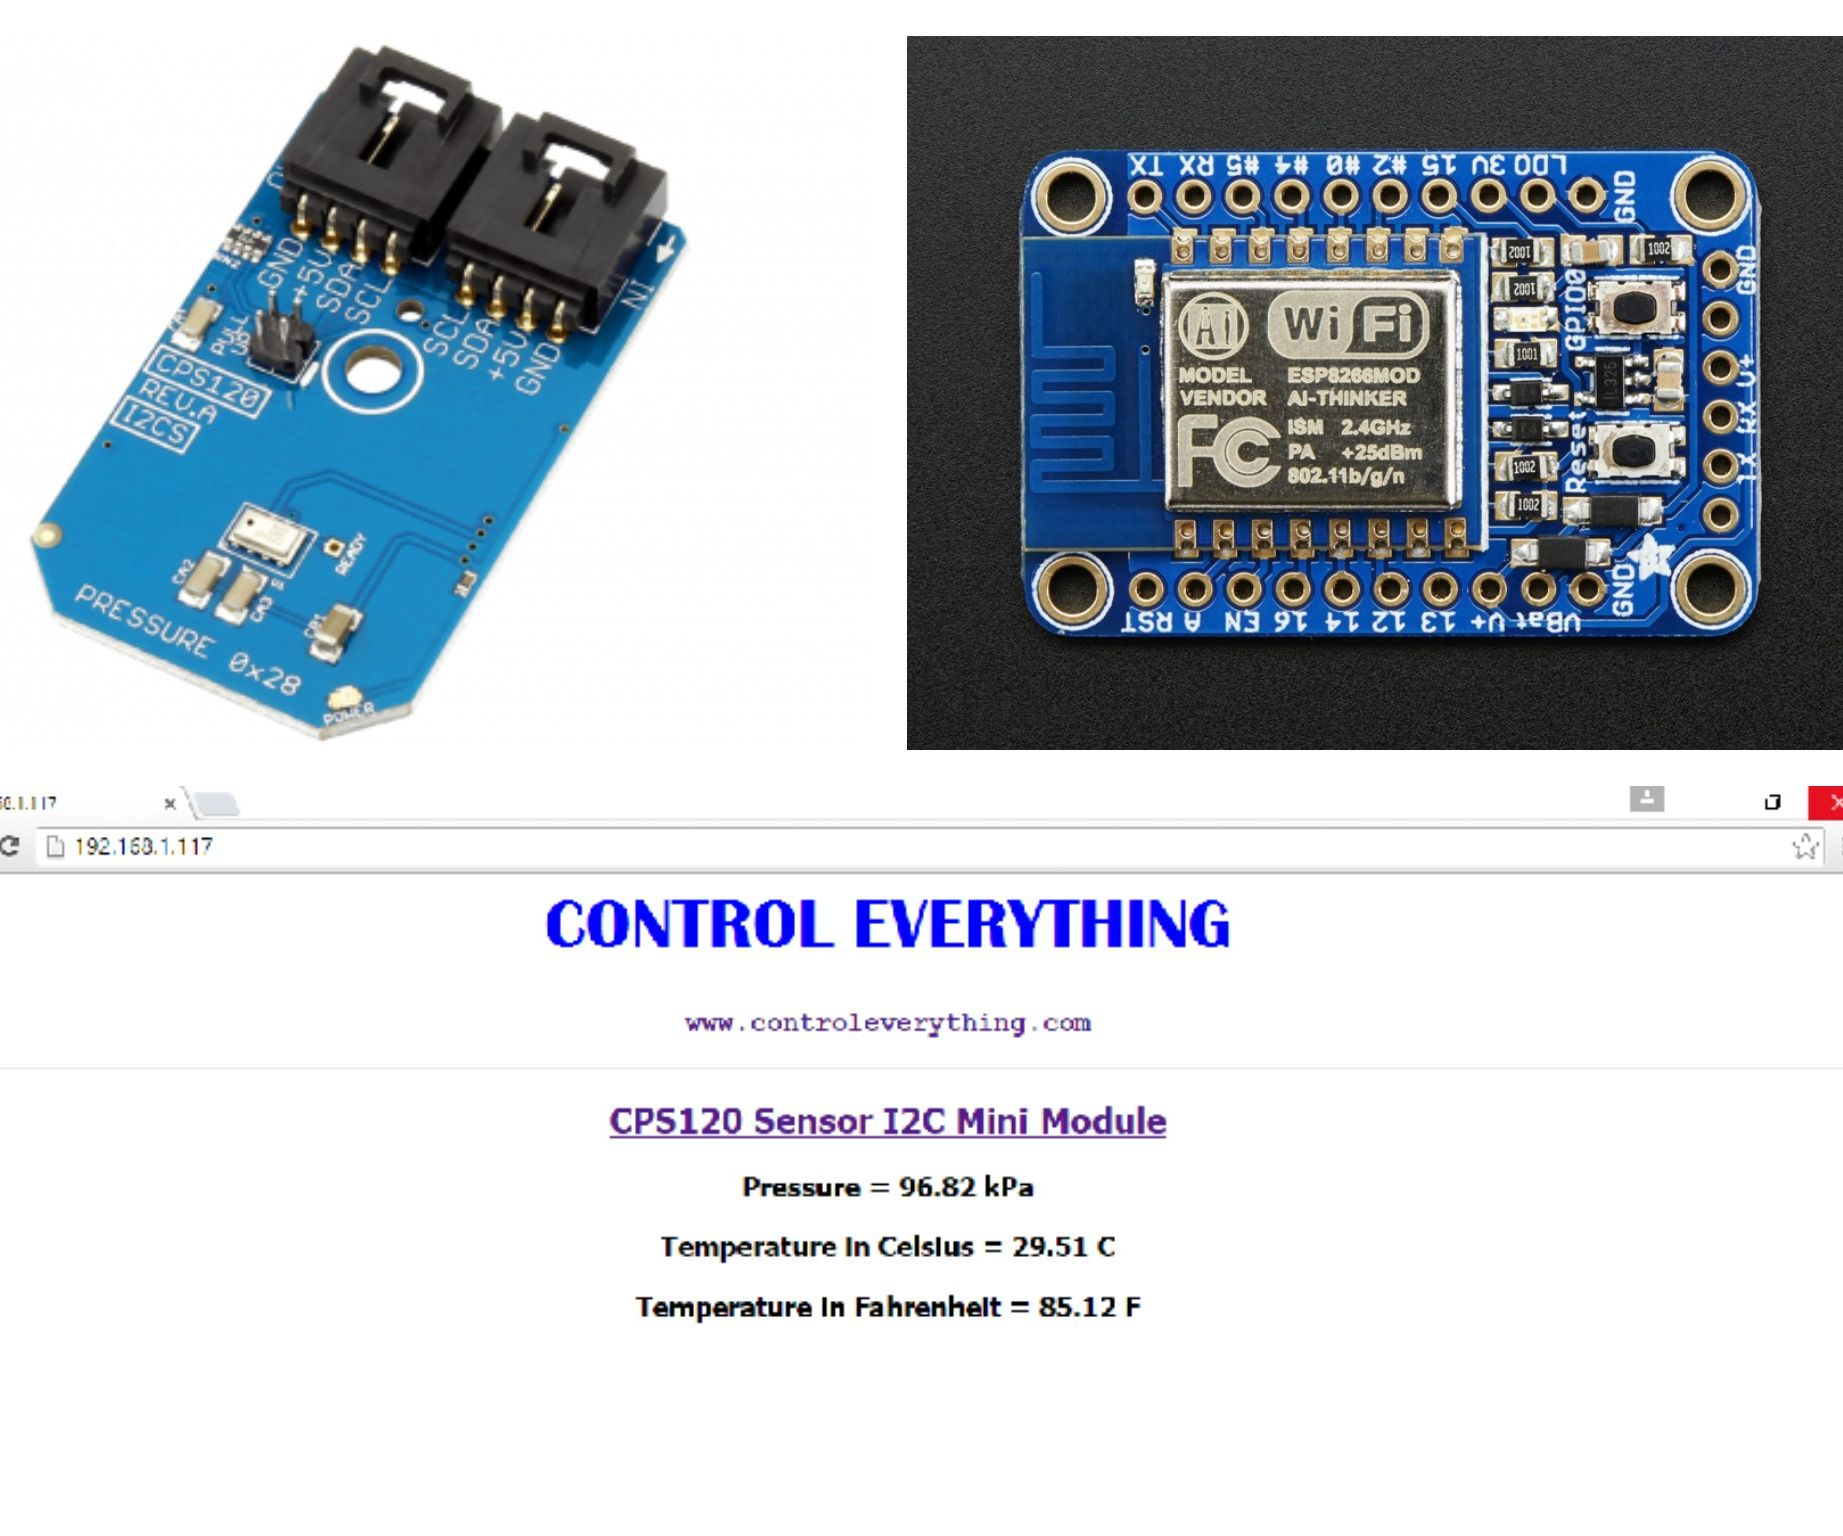 Pressure and Temperature Monitoring Web Server using ESP8266 and CPS120